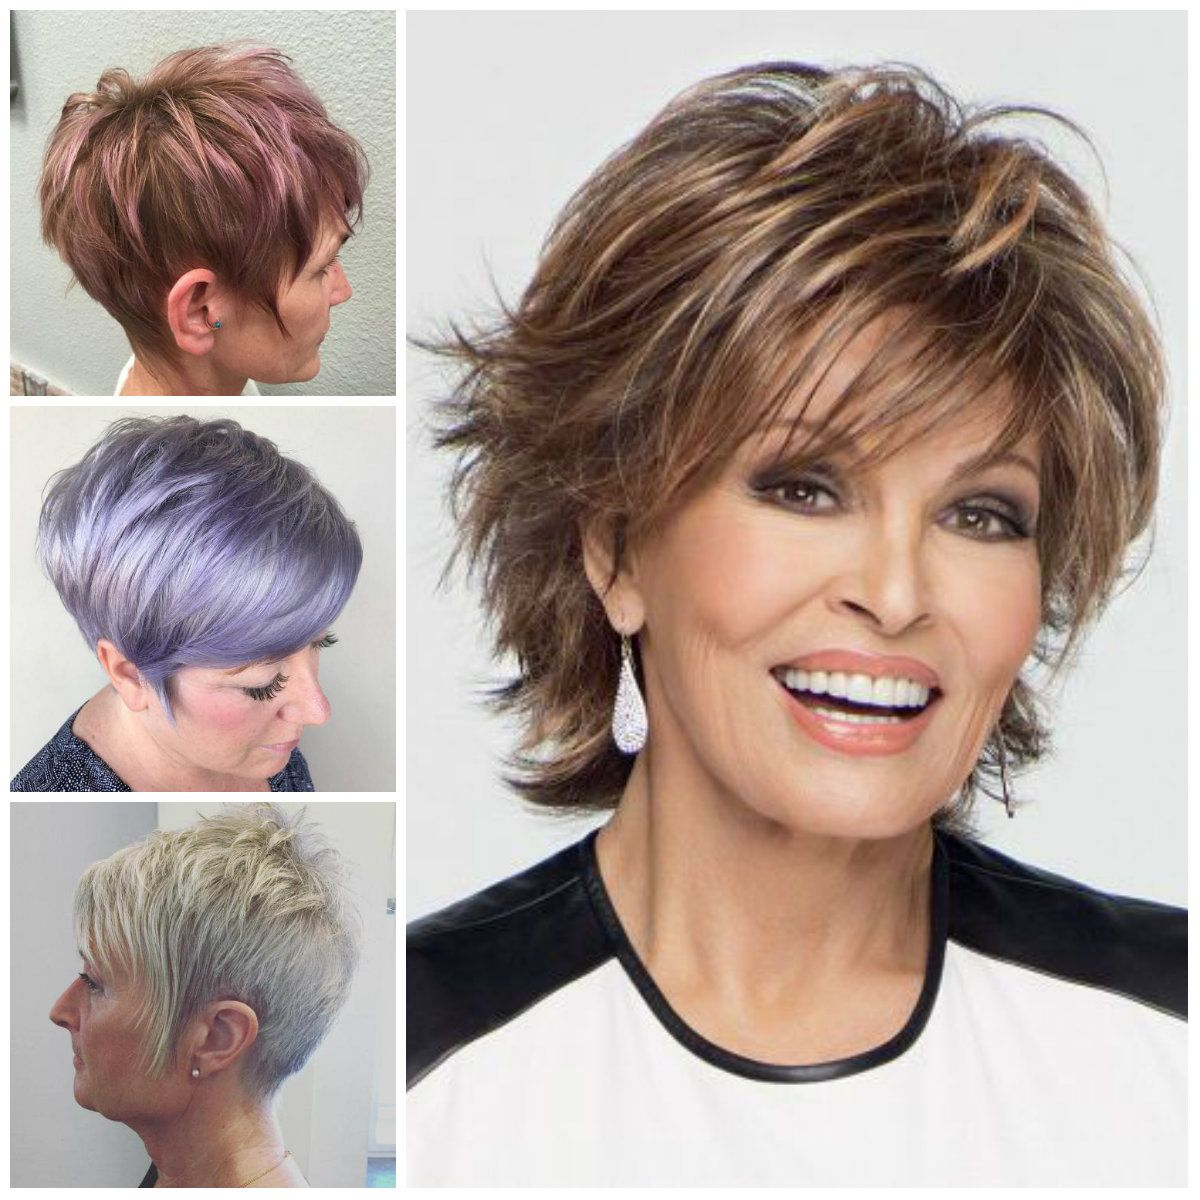 Hair Styles For Short Hair 2017 Short Hairstyles For Older Women  Short Hair Cuts  Pinterest